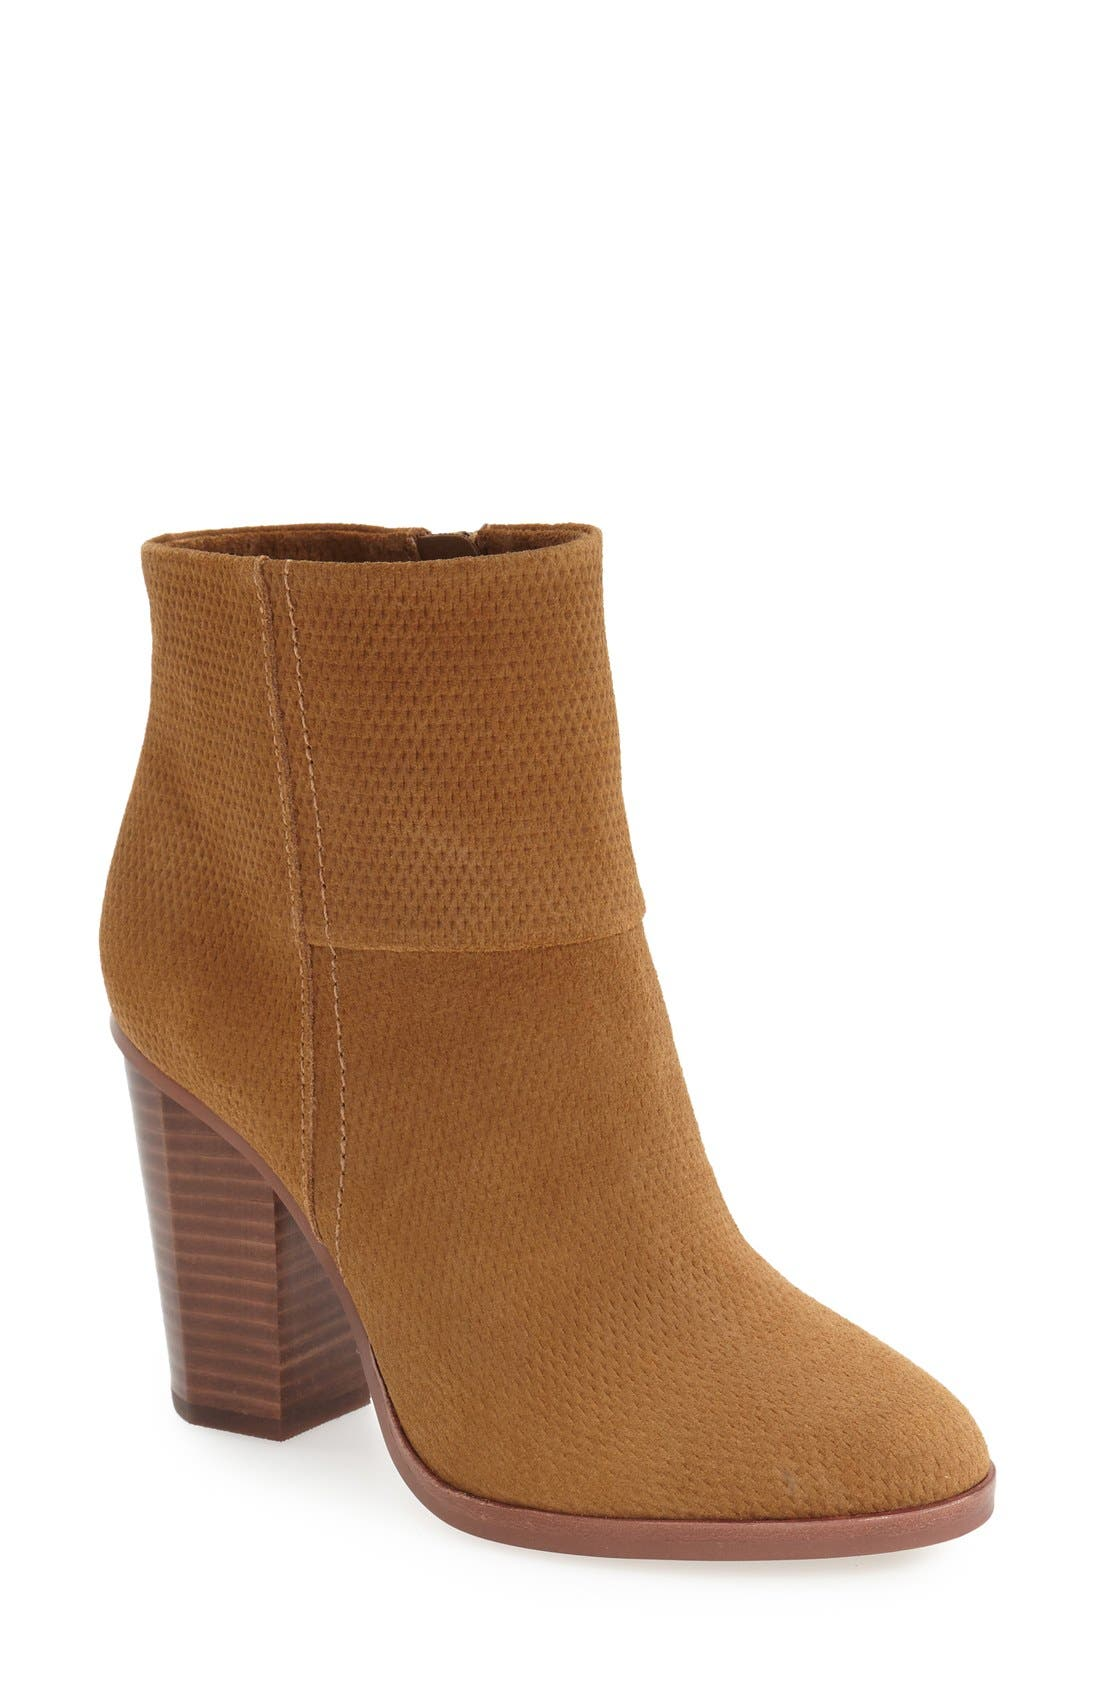 Alternate Image 1 Selected - Vince Camuto 'Larena' Almond Toe Bootie (Women)